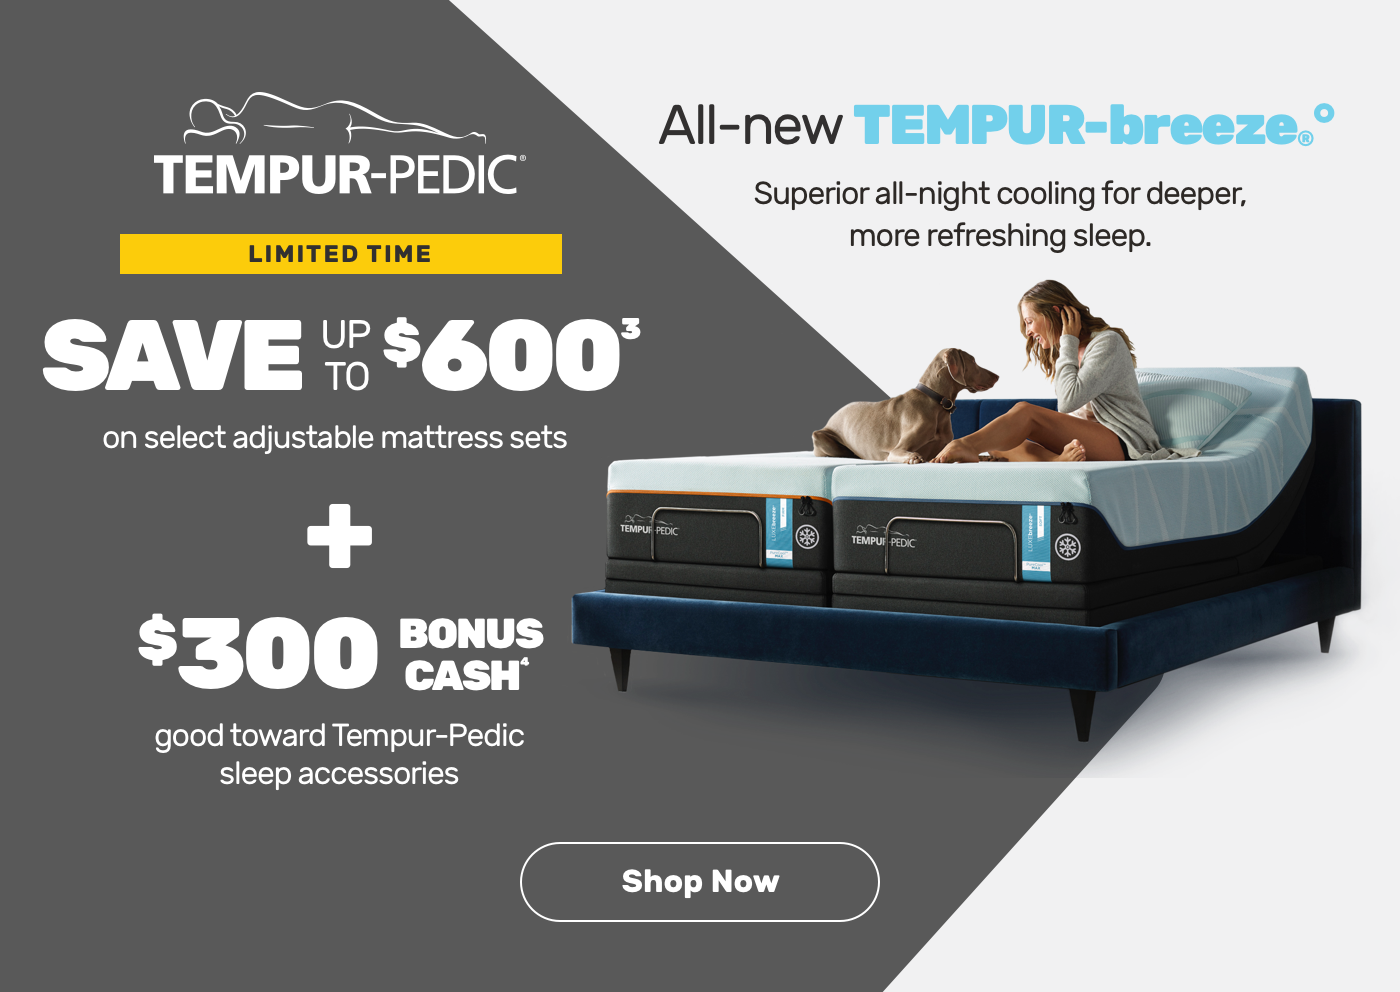 Limited Time. Save up to $600 on select adjustable mattress sets plus $300 bonus cash good towards Temper-Pedic sleep accessories. Shop Now.